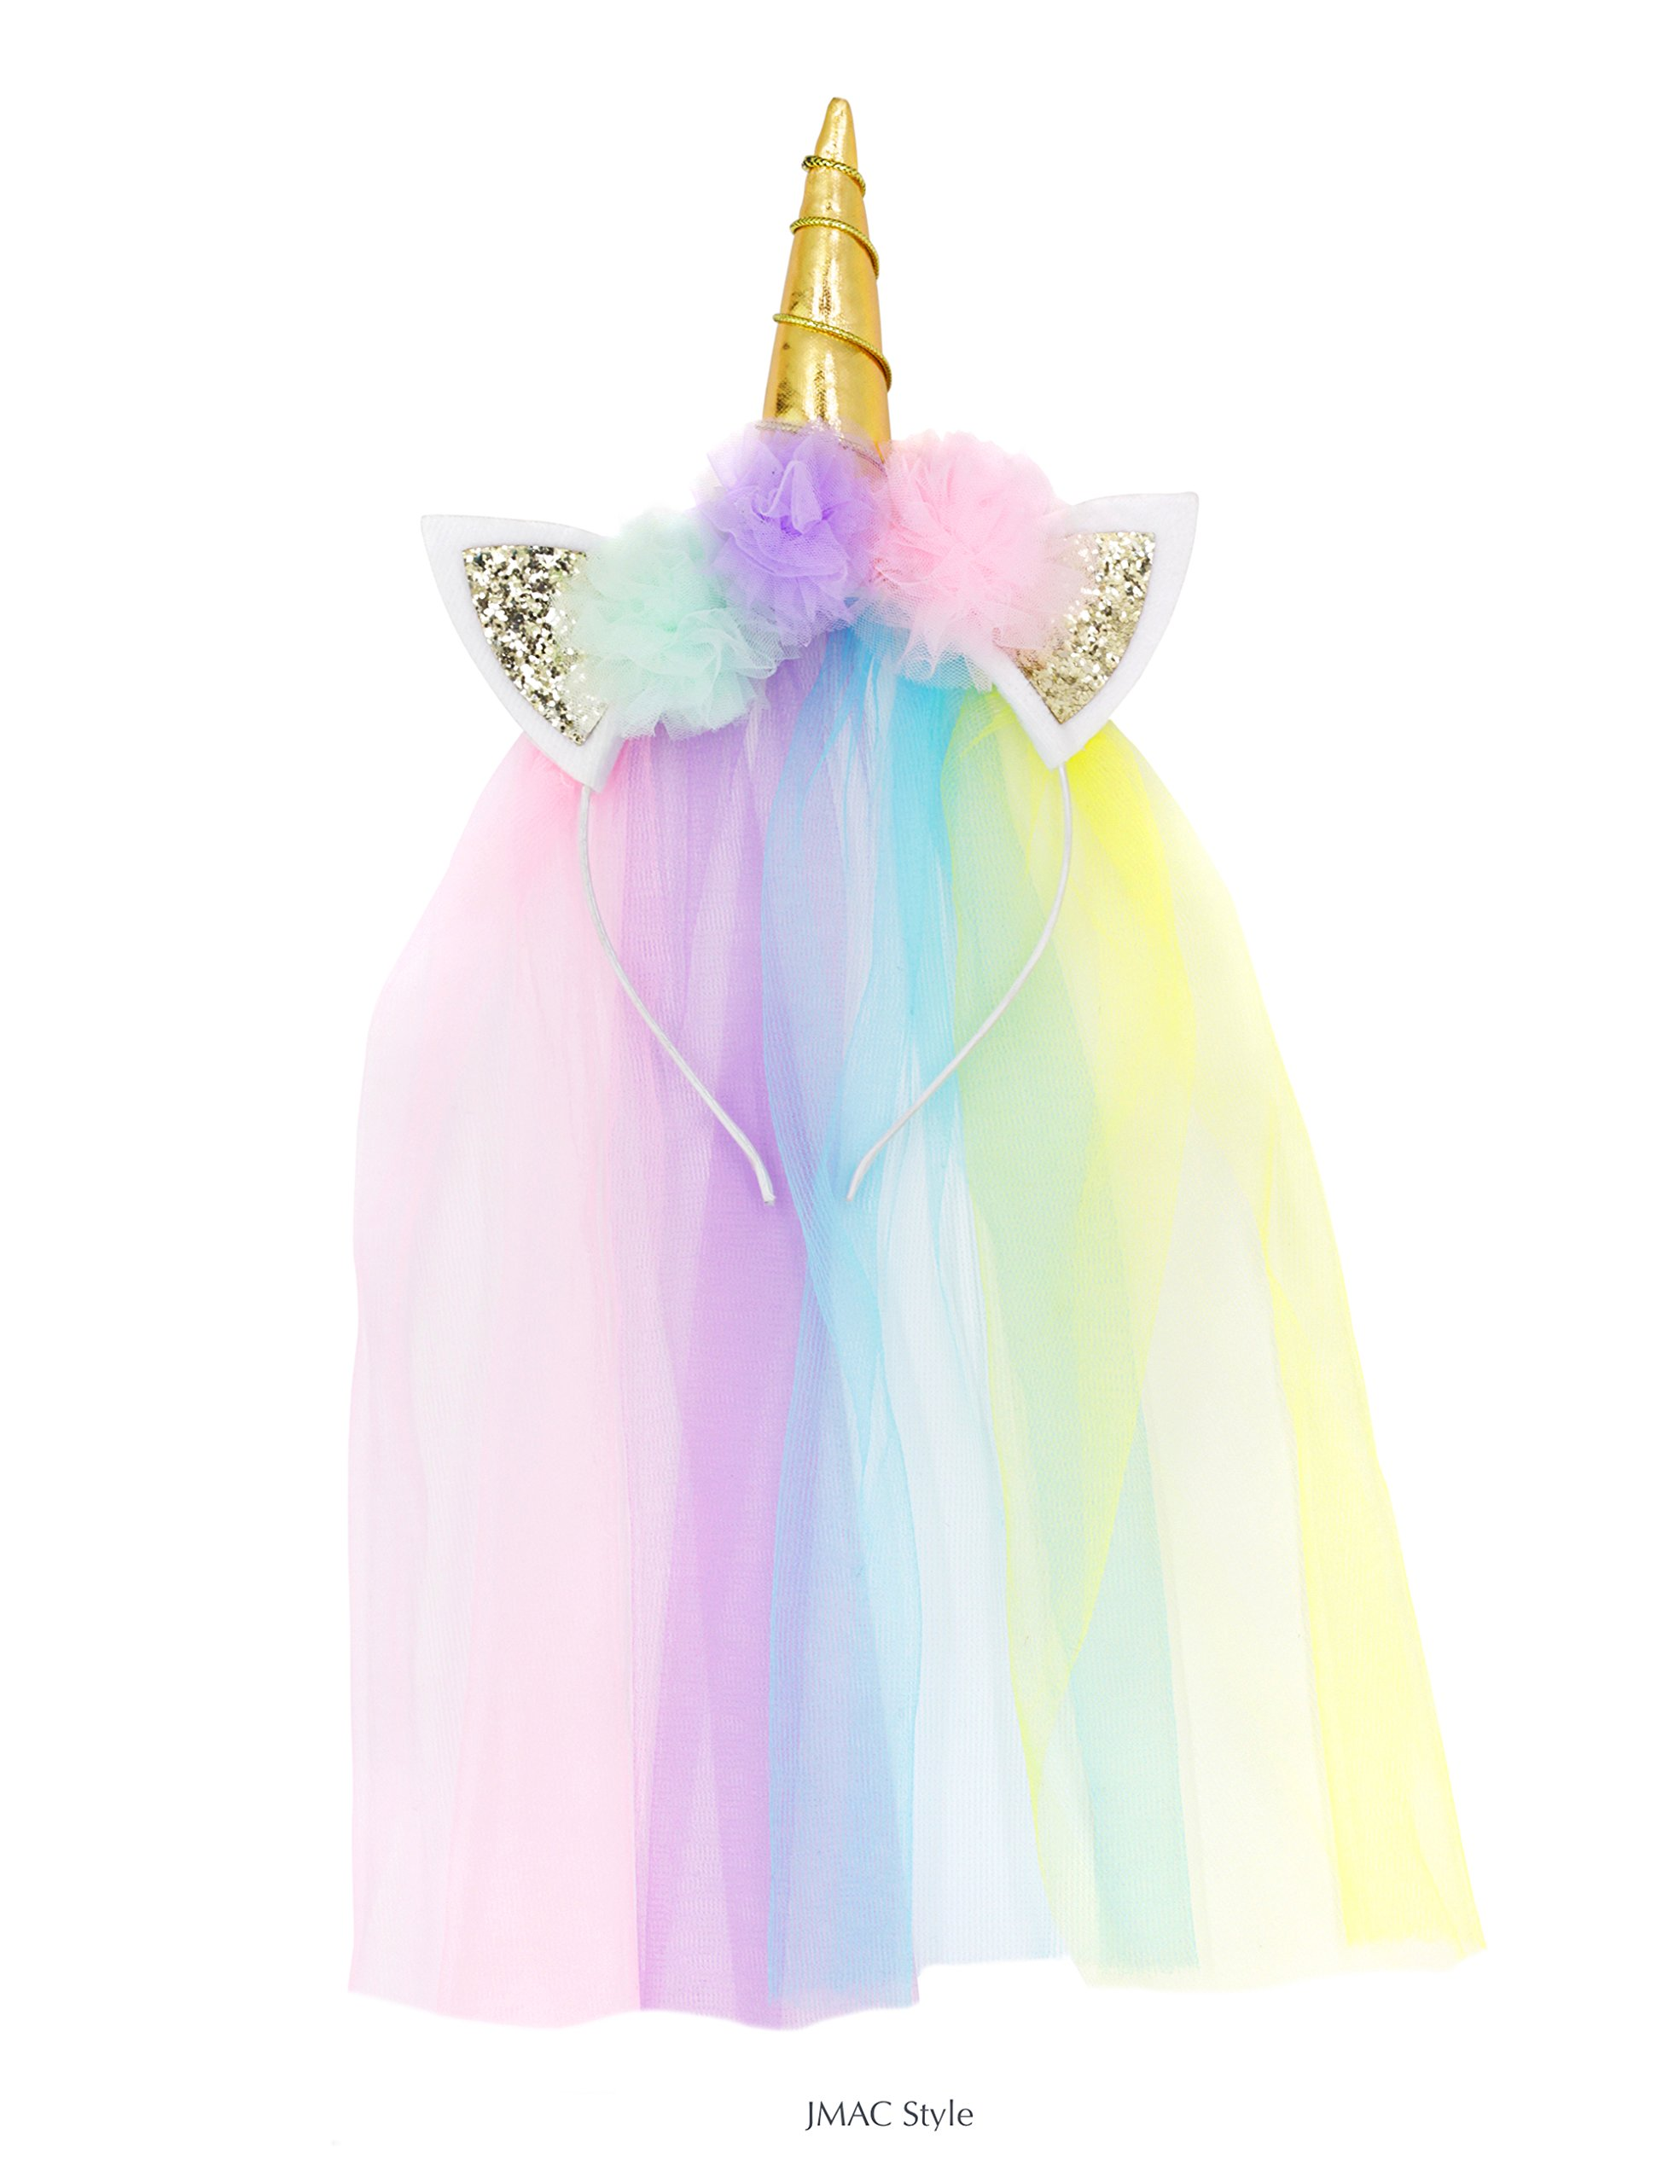 Rainbow Unicorn Headband with Gold Horn, Glitter Ears, Ultra Soft Veil, for Birthday Party Decoration or Cosplay Costume for Girls and Adult